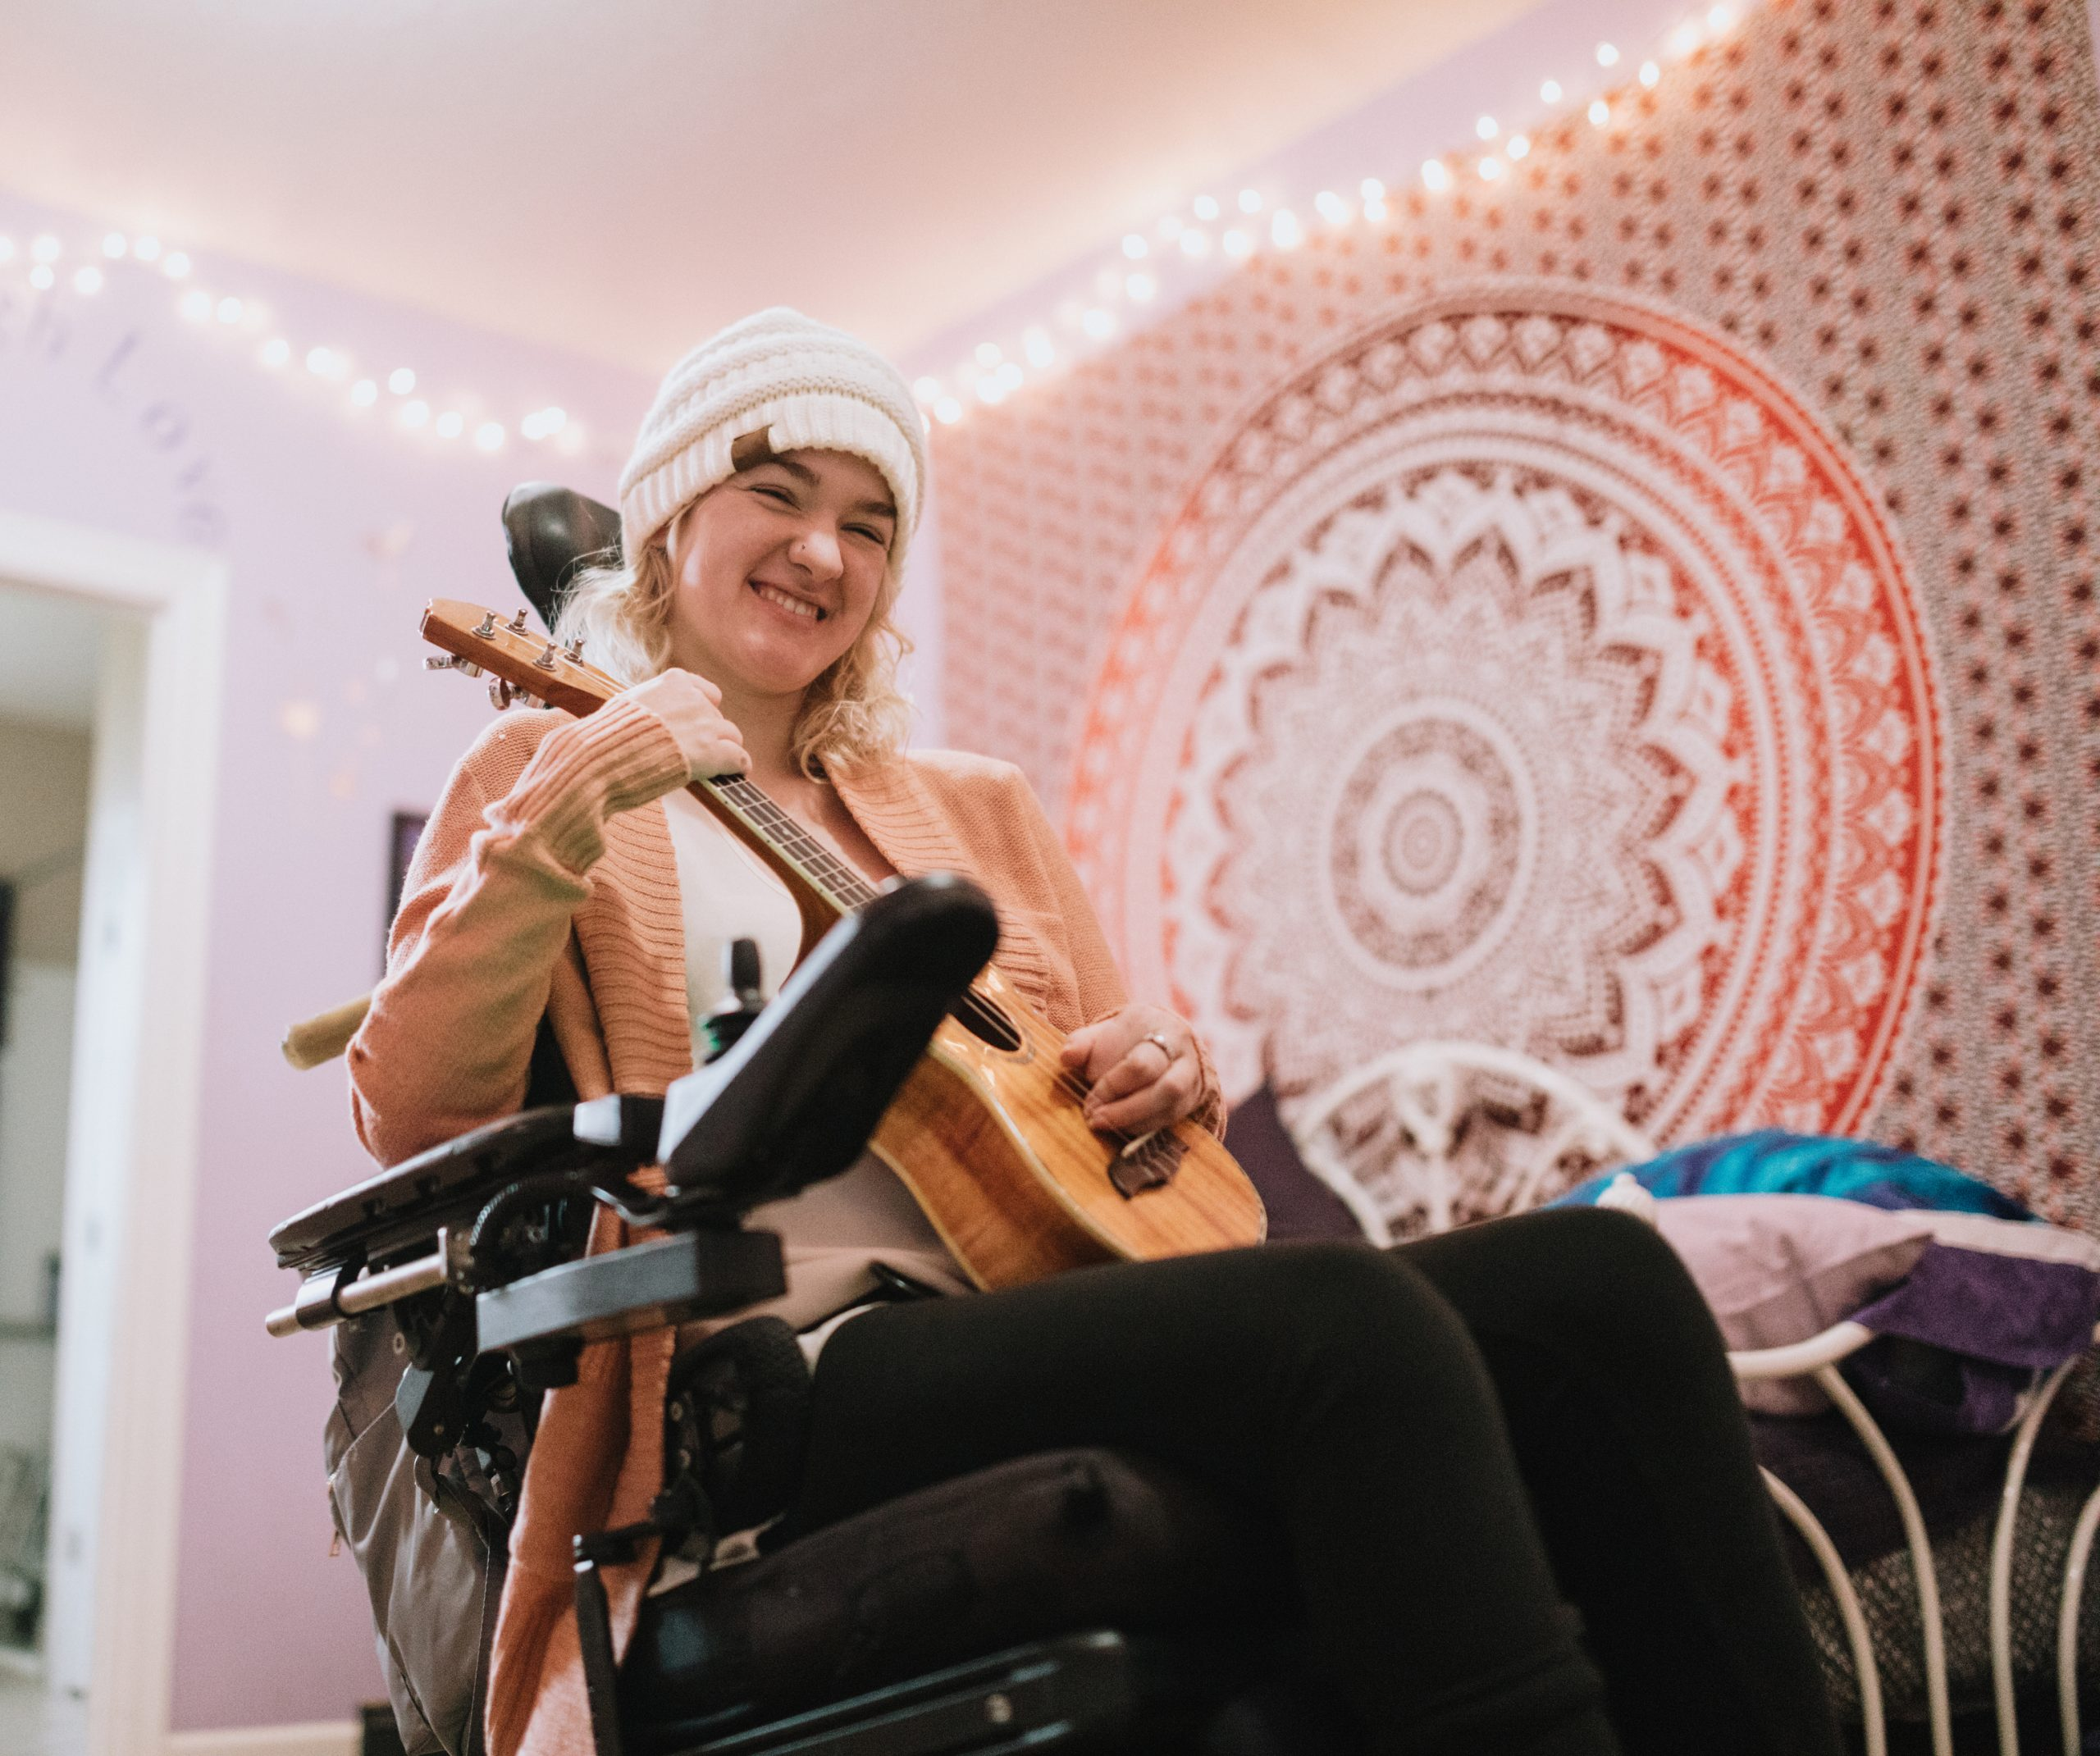 Cheerful Young Woman In Wheelchair At Home With Ukulele